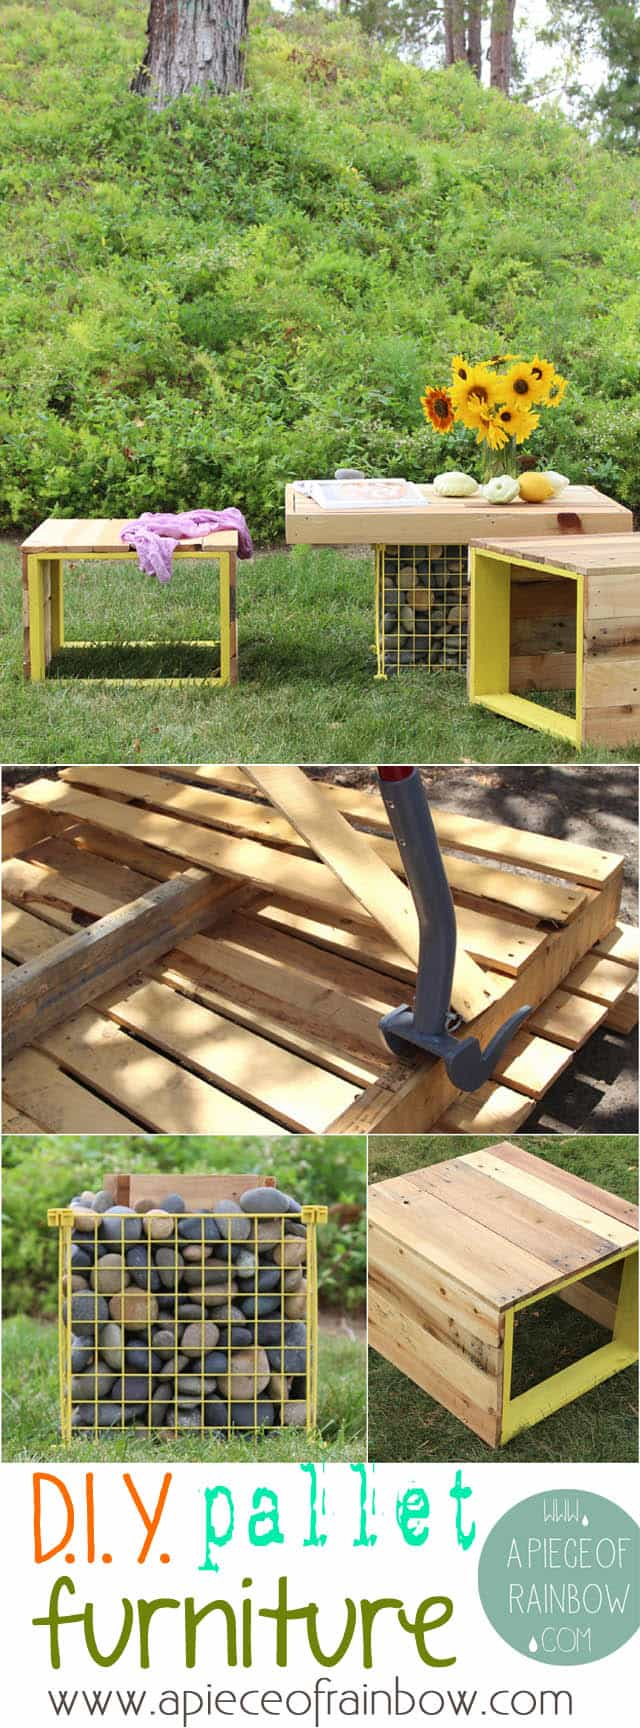 make pallet garden furniture  benches and gabion table    www apieceofrainbow com. Make pallet bench table   A Piece of Rainbow